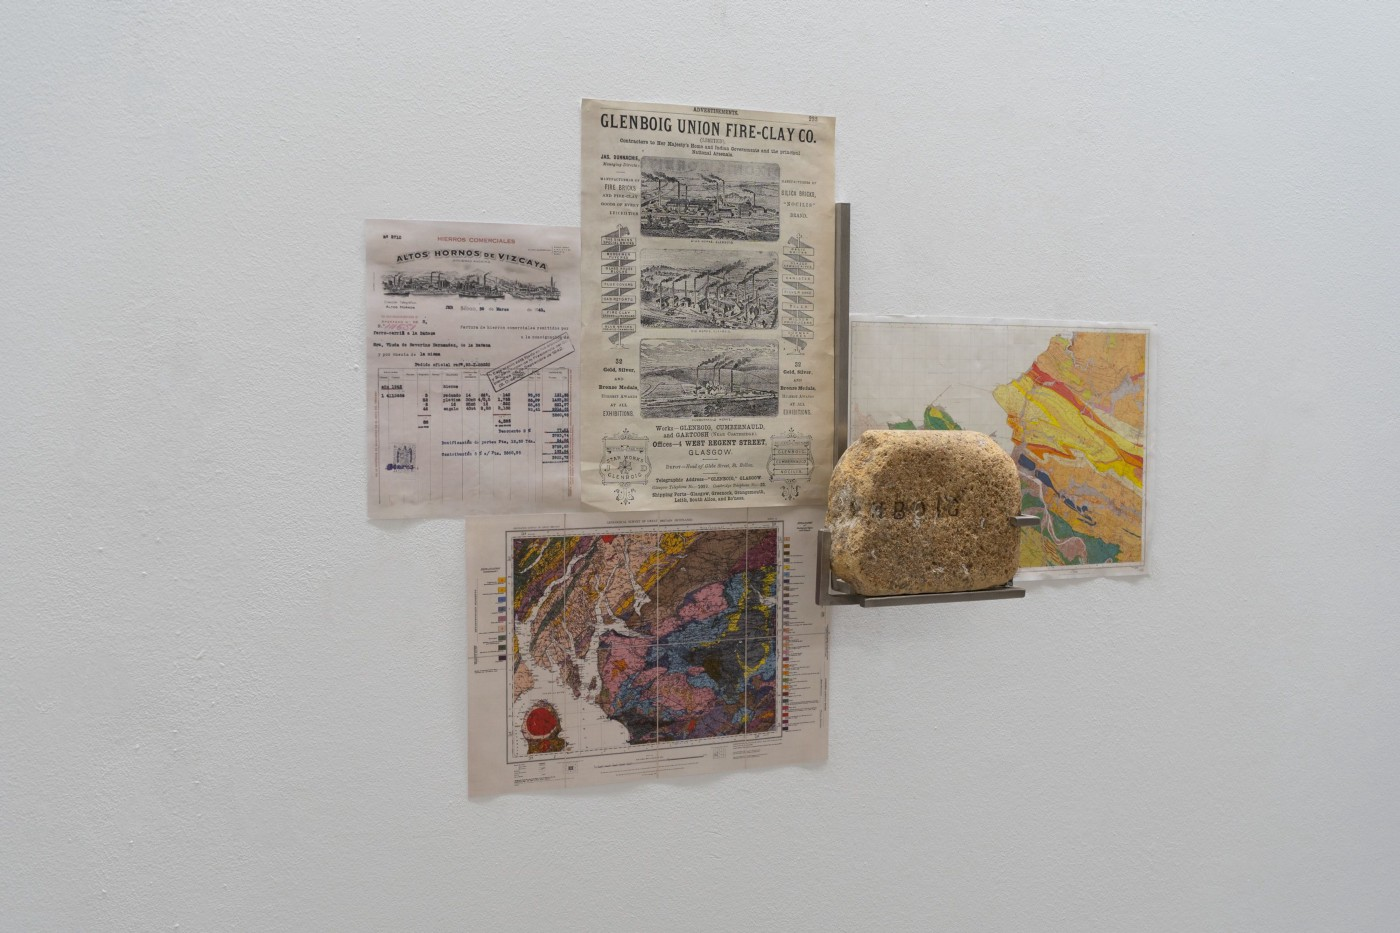 Four cuttings from magazines, a map and a rock hanging on a wall.